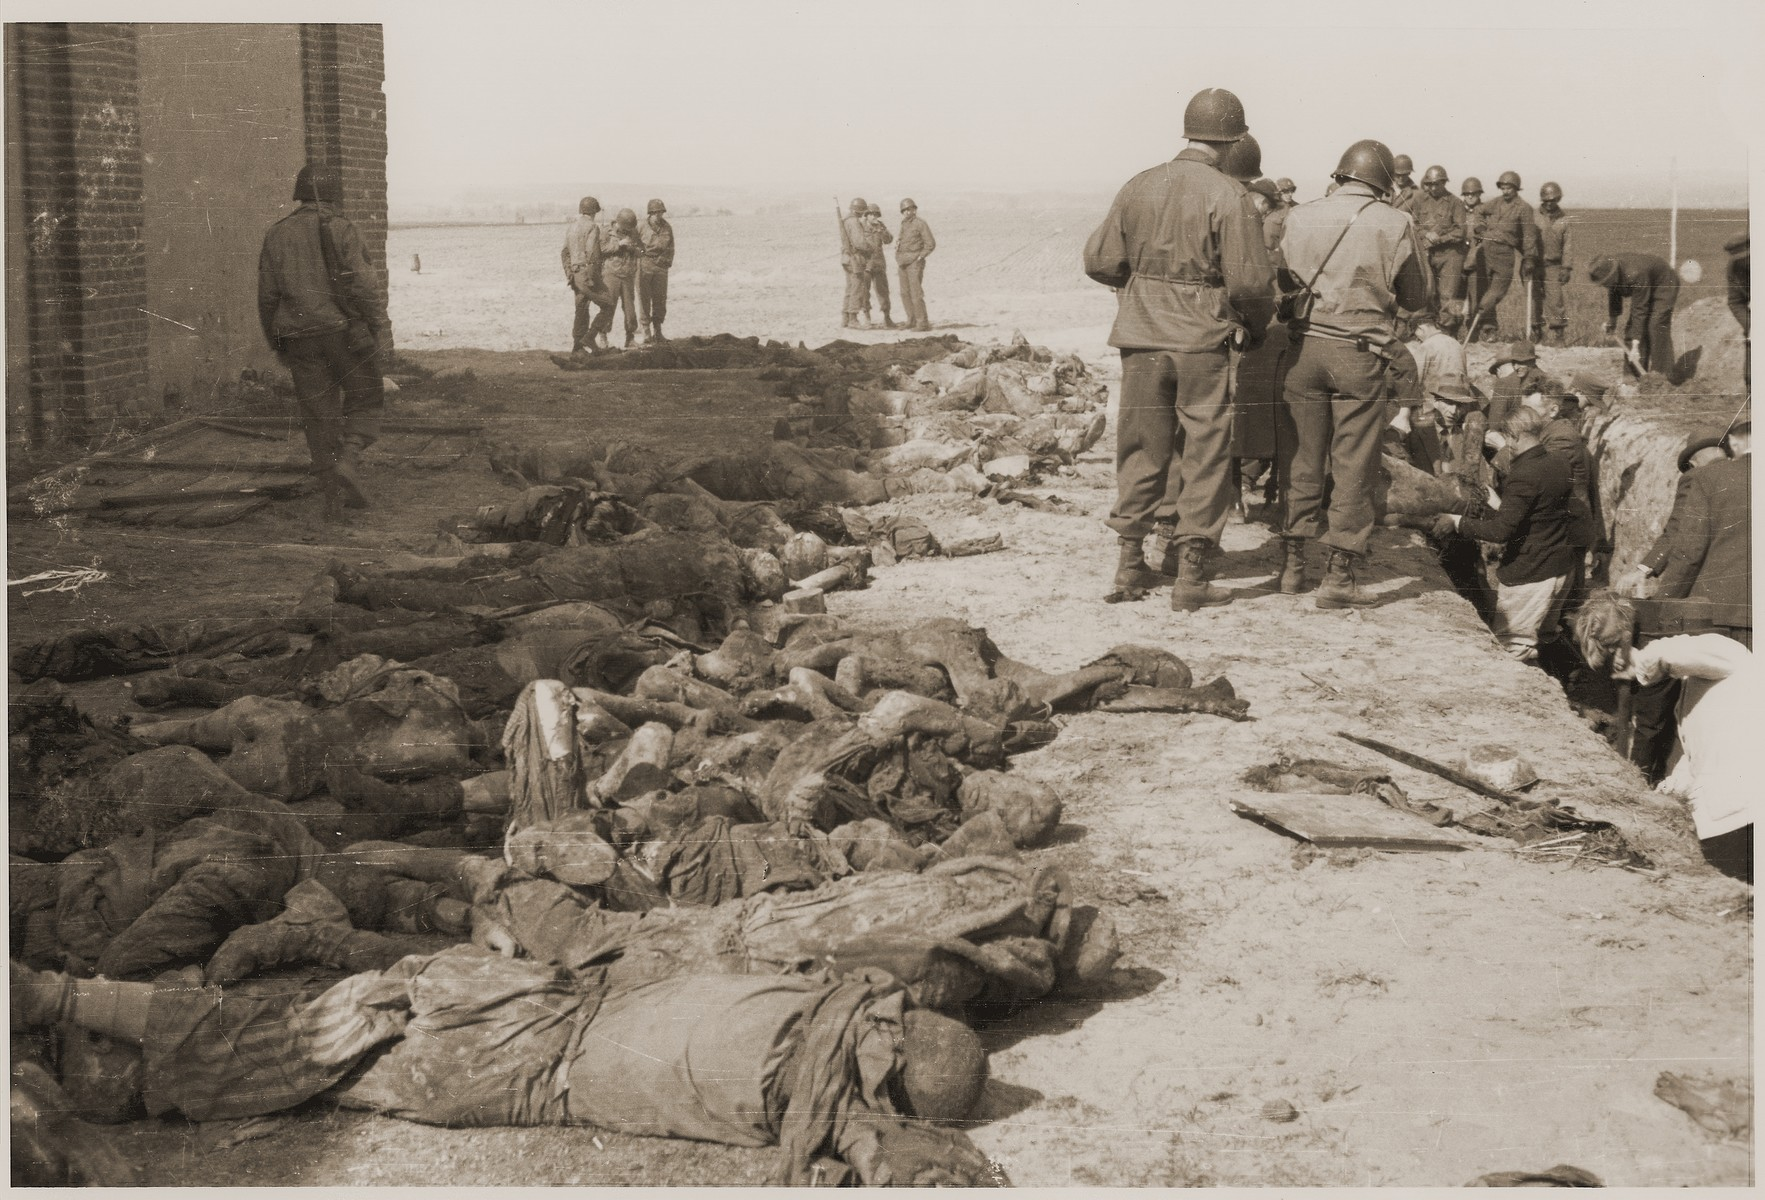 Under the supervision of American soldiers, German civilians exhume the bodies of prisoners killed by the SS in a barn just outside of Gardelegen.